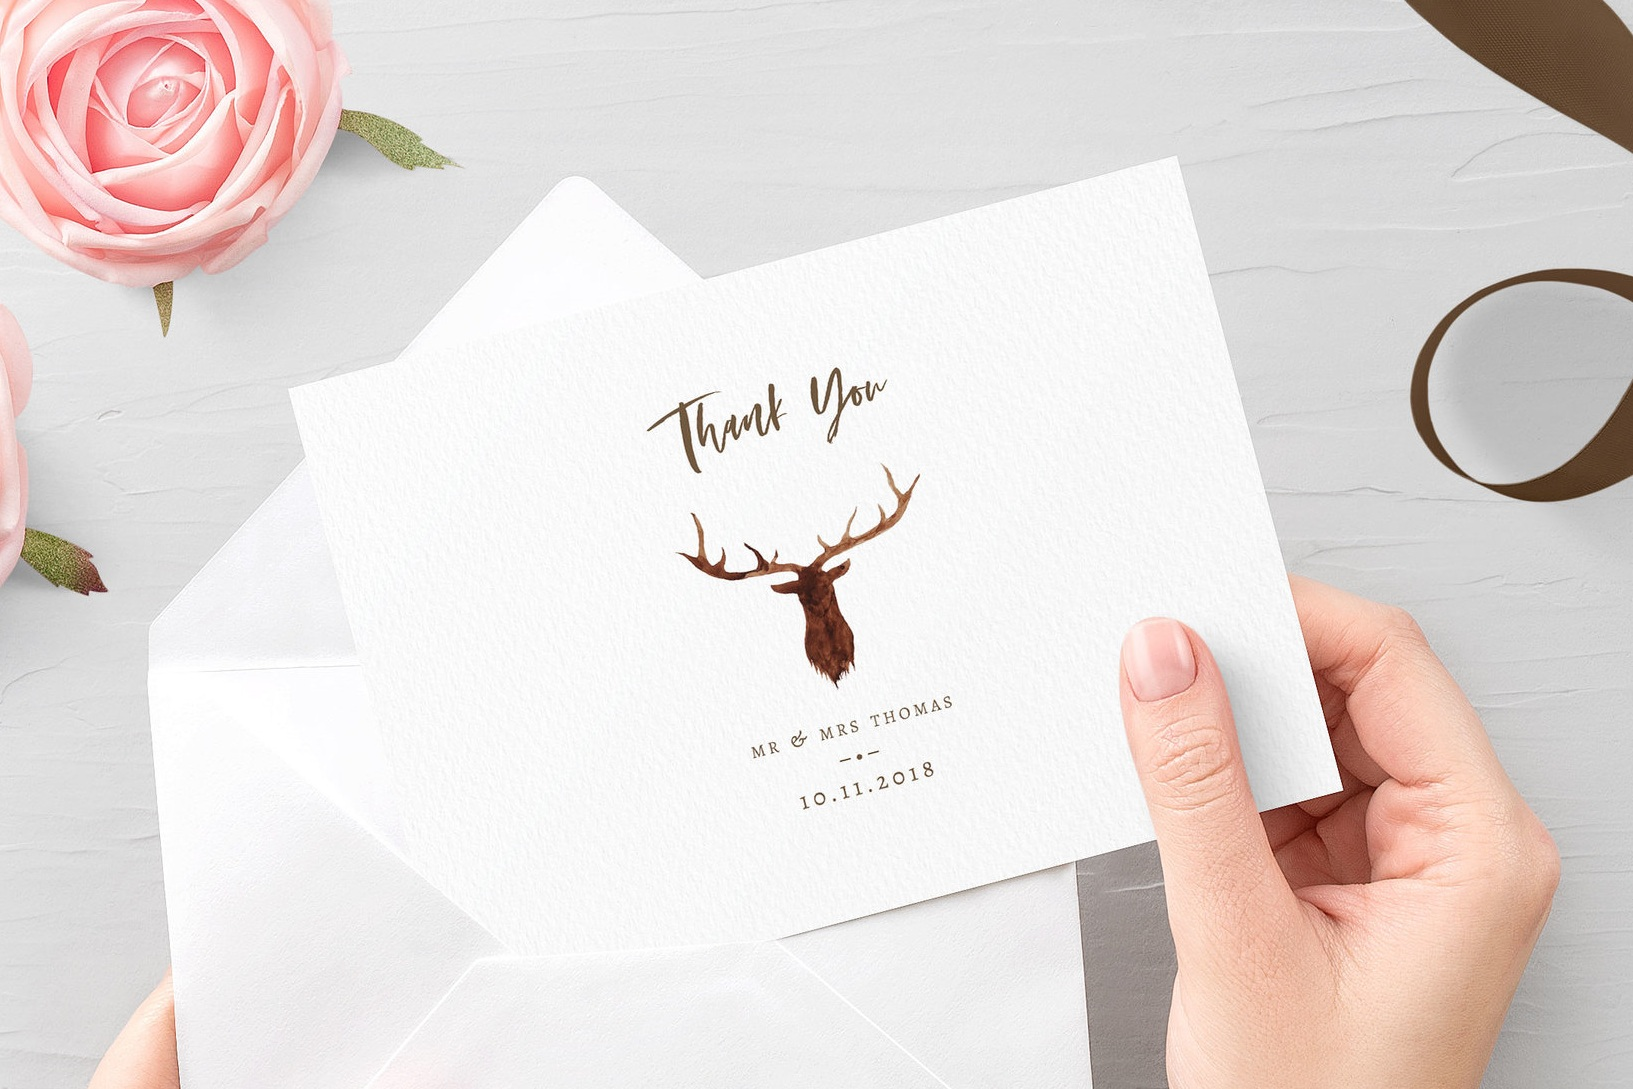 Highgate - An iconic watercolour stag's head adorn this wedding thank you card, from our vintage Highgate collection.Our Thank You Cards can be printed single-sided for you to write by hand on the reverse, or printed double-sided with a passage of your choice. Envelopes are included as standard.Pricing£1.09 - single-sided / £1.25 - double-sided